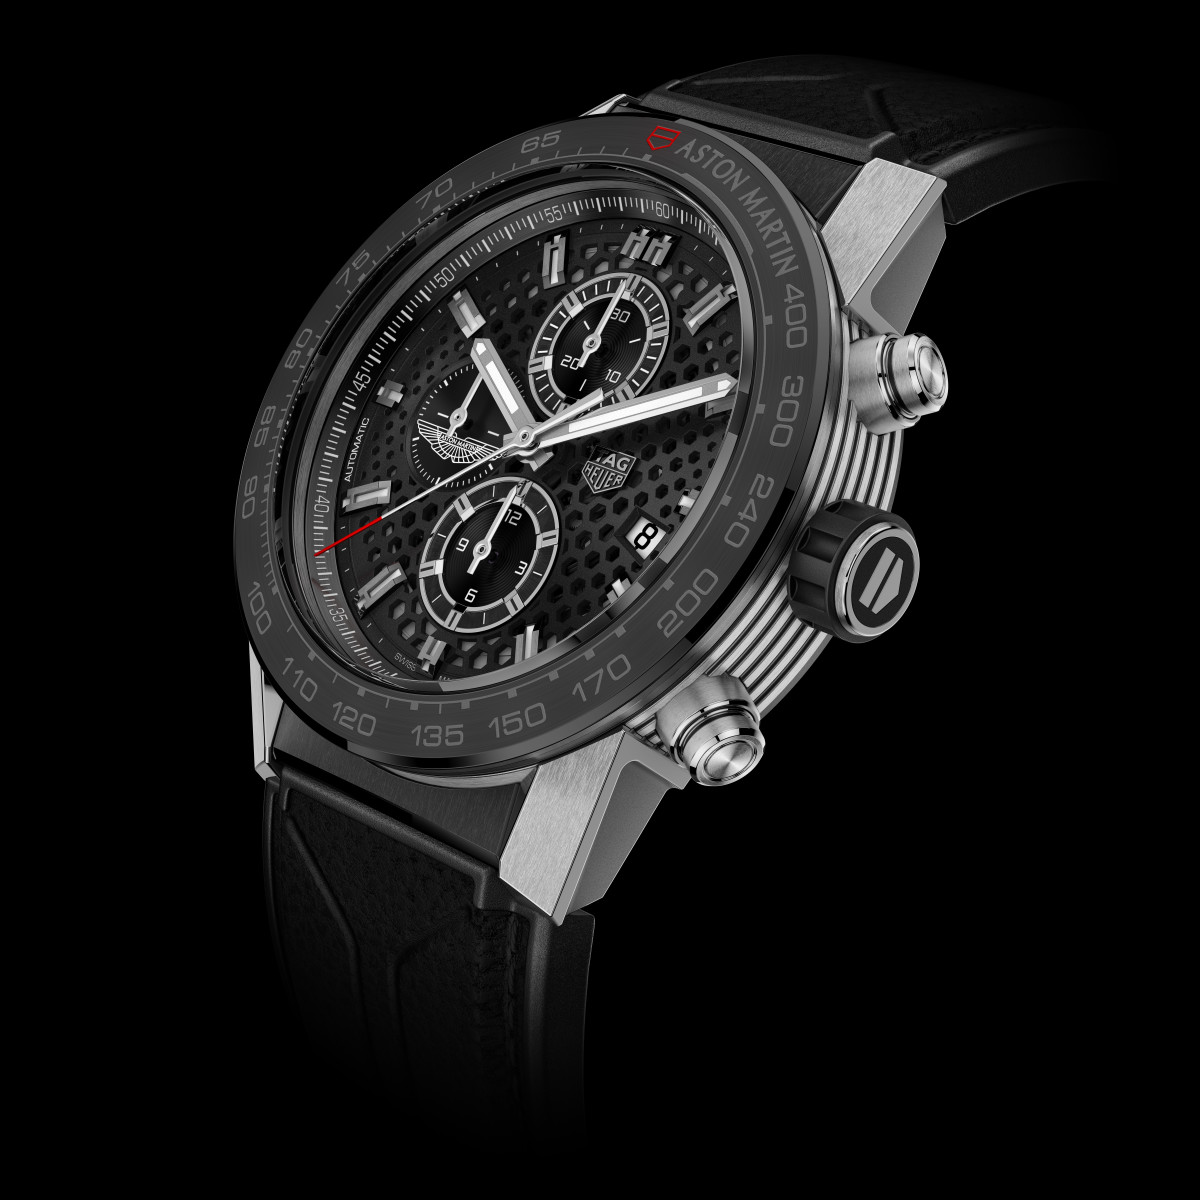 Tag Heuer Announces Its Official Partnership With Aston